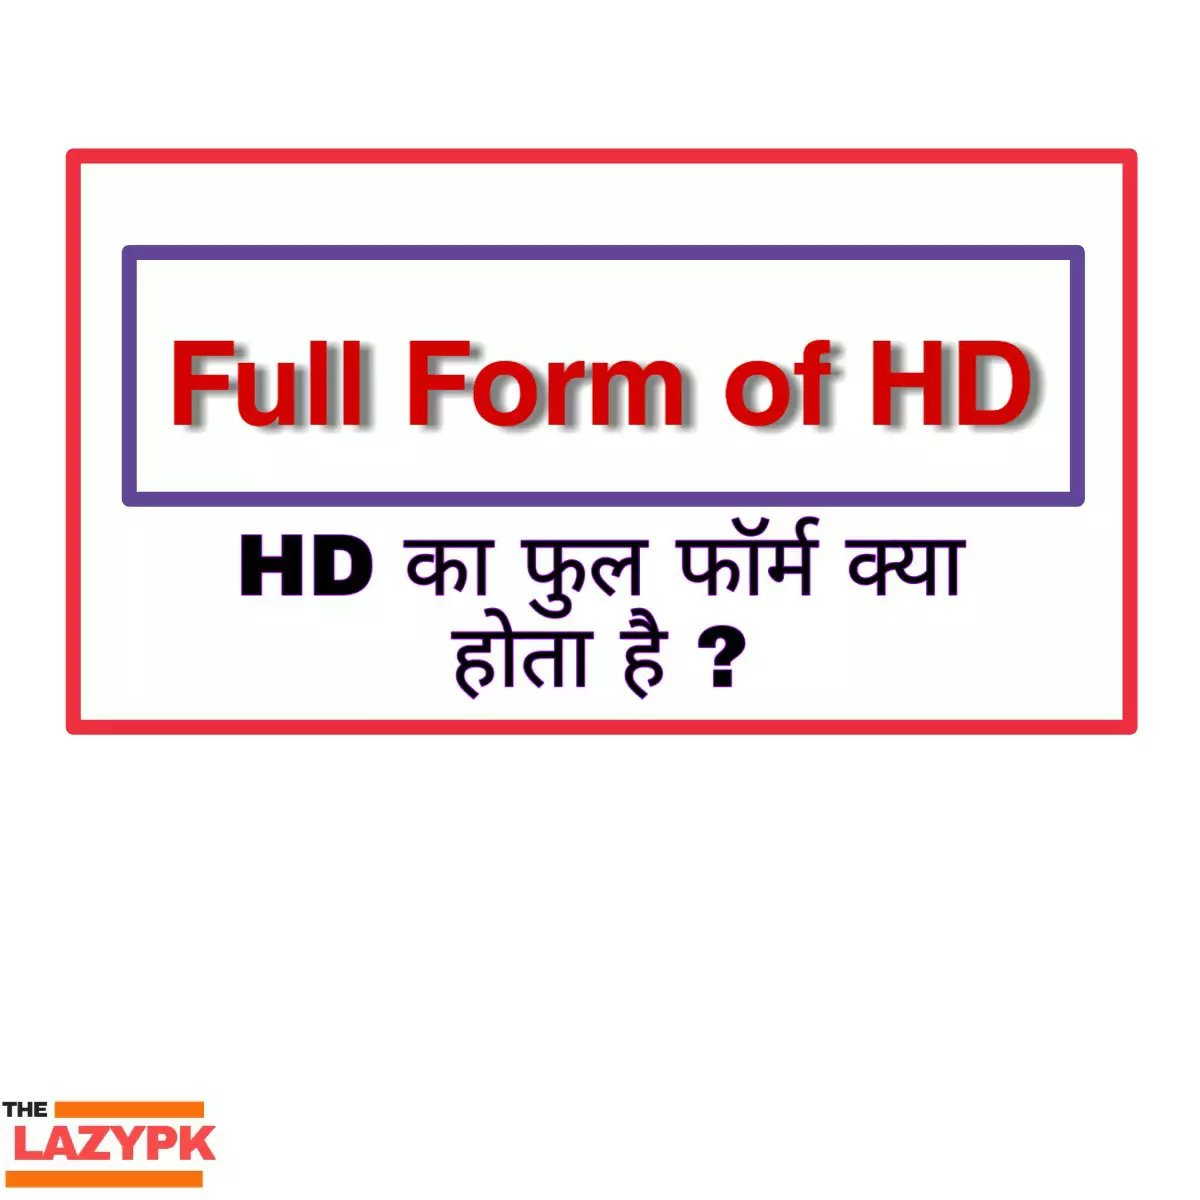 Full Form of Hard Disk